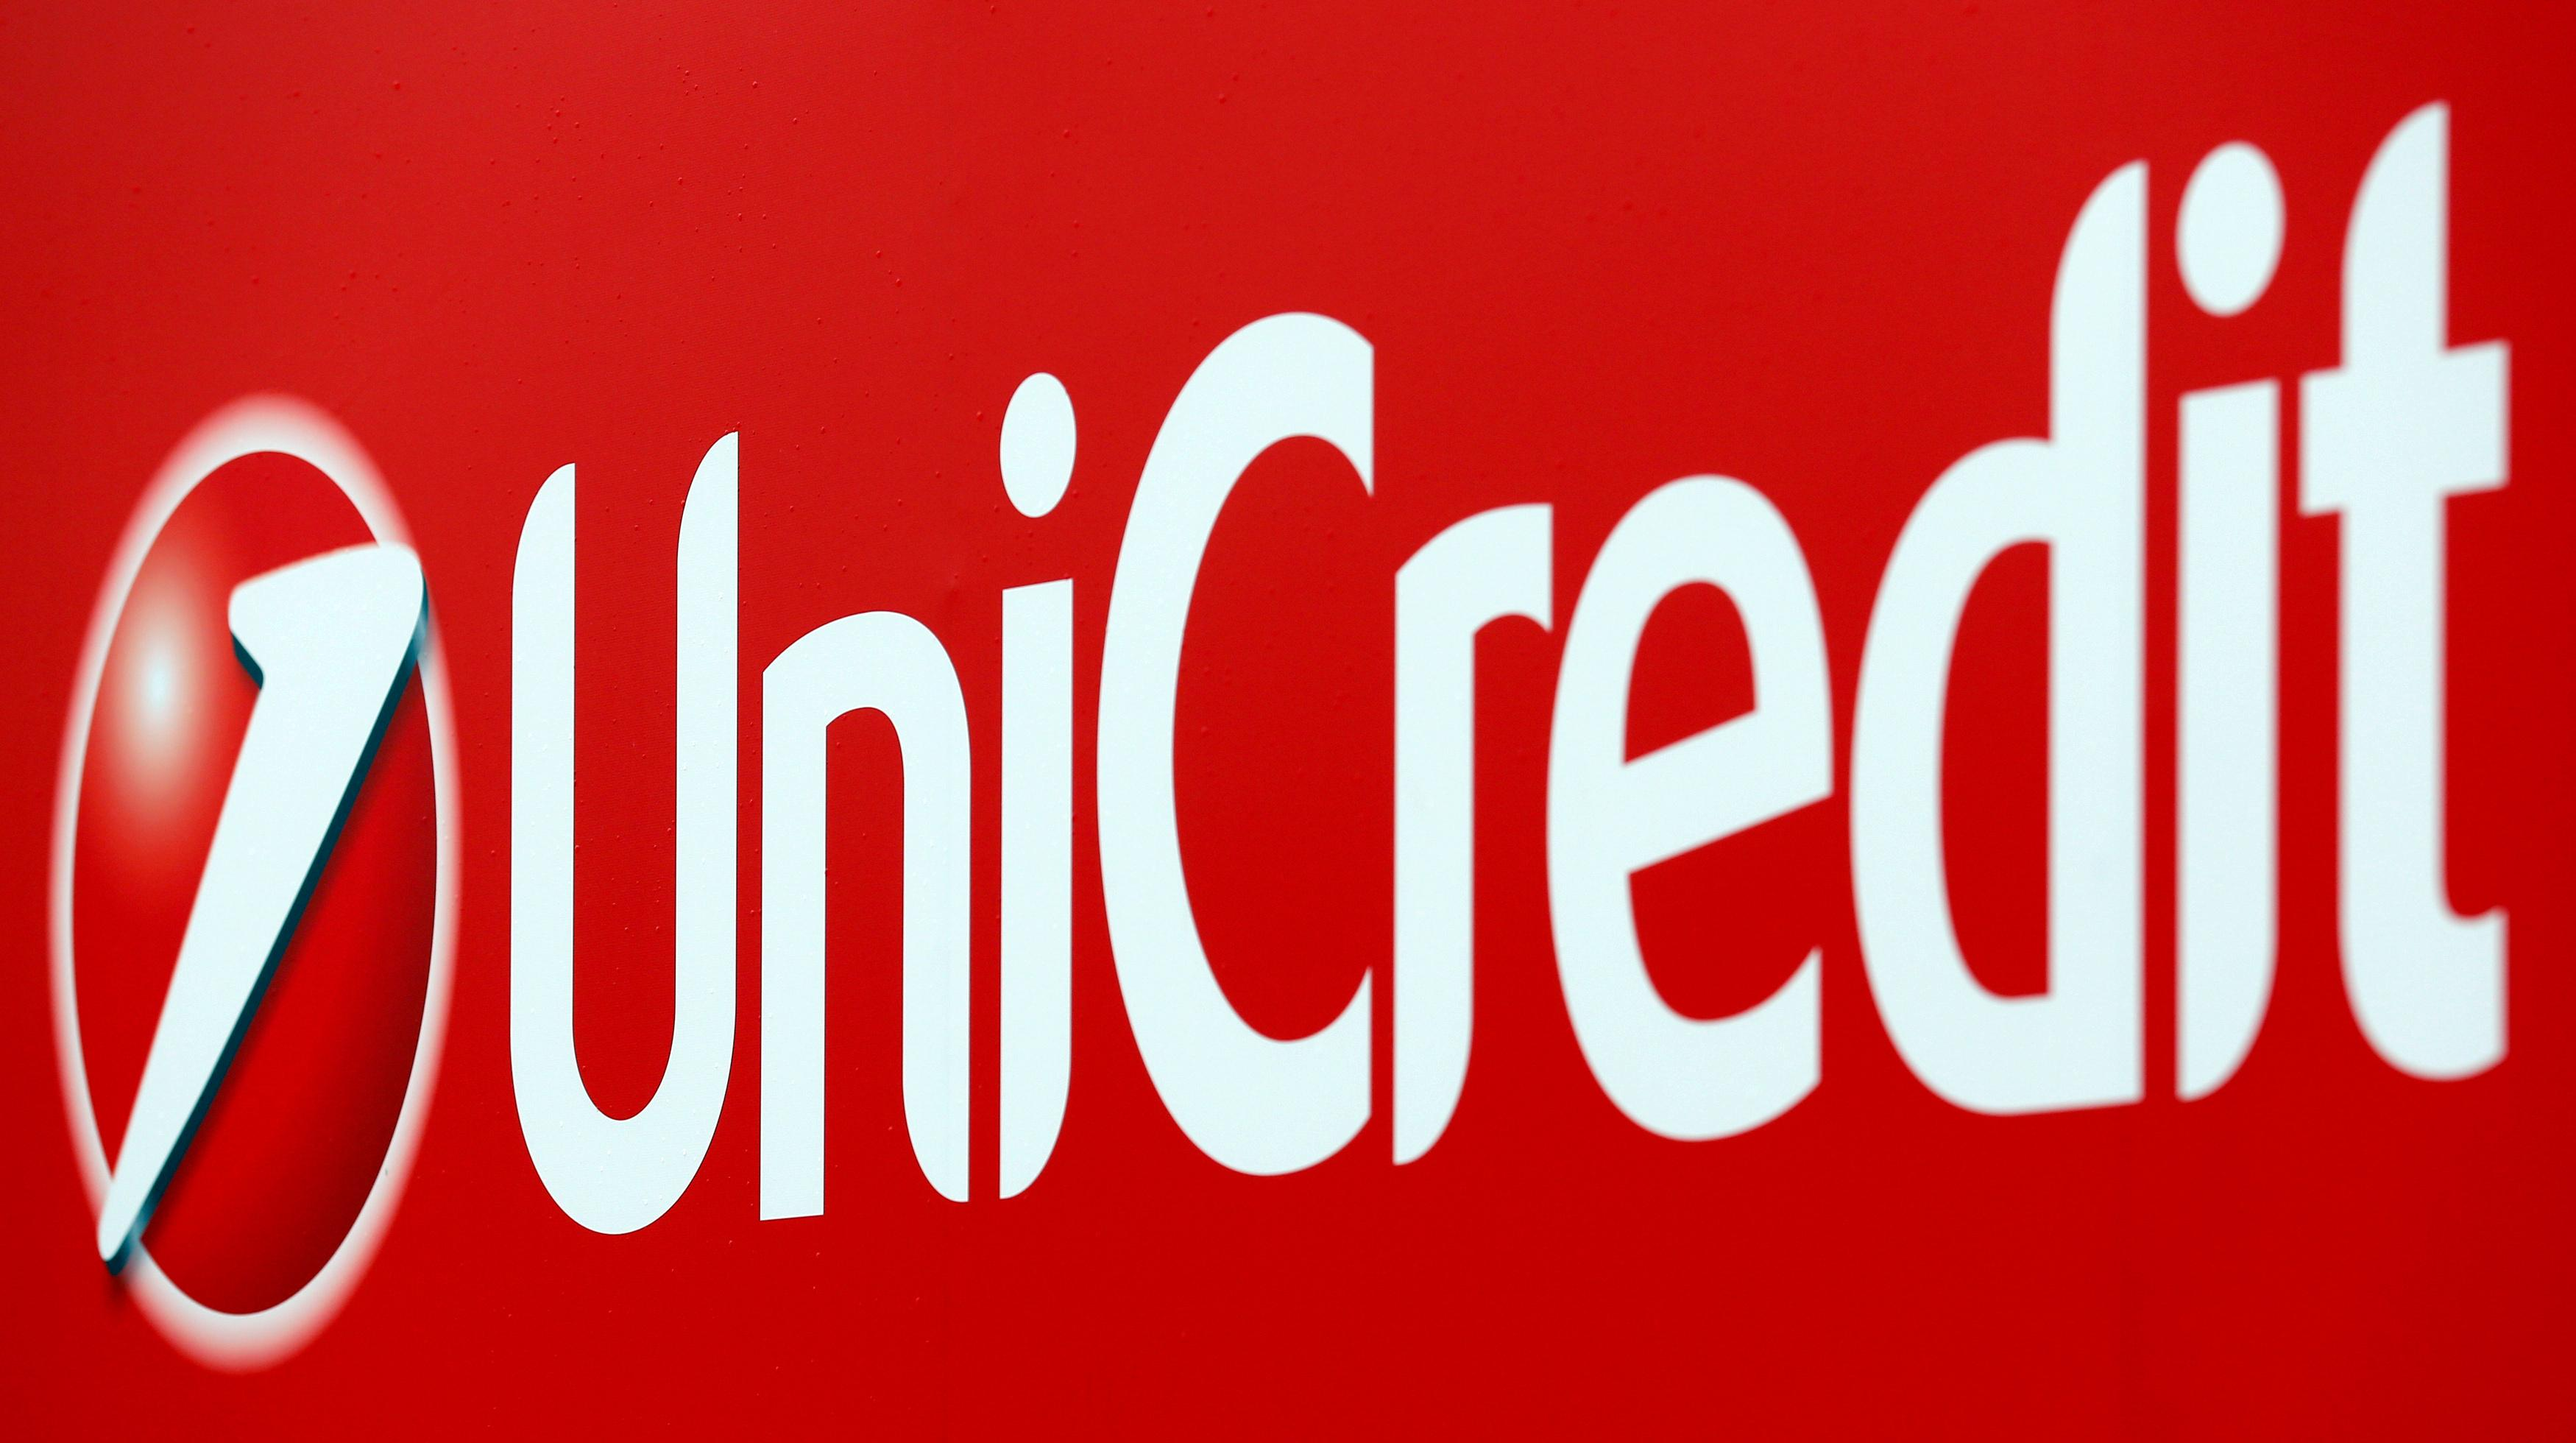 Italy's UniCredit to exit thermal coal financing by 2023